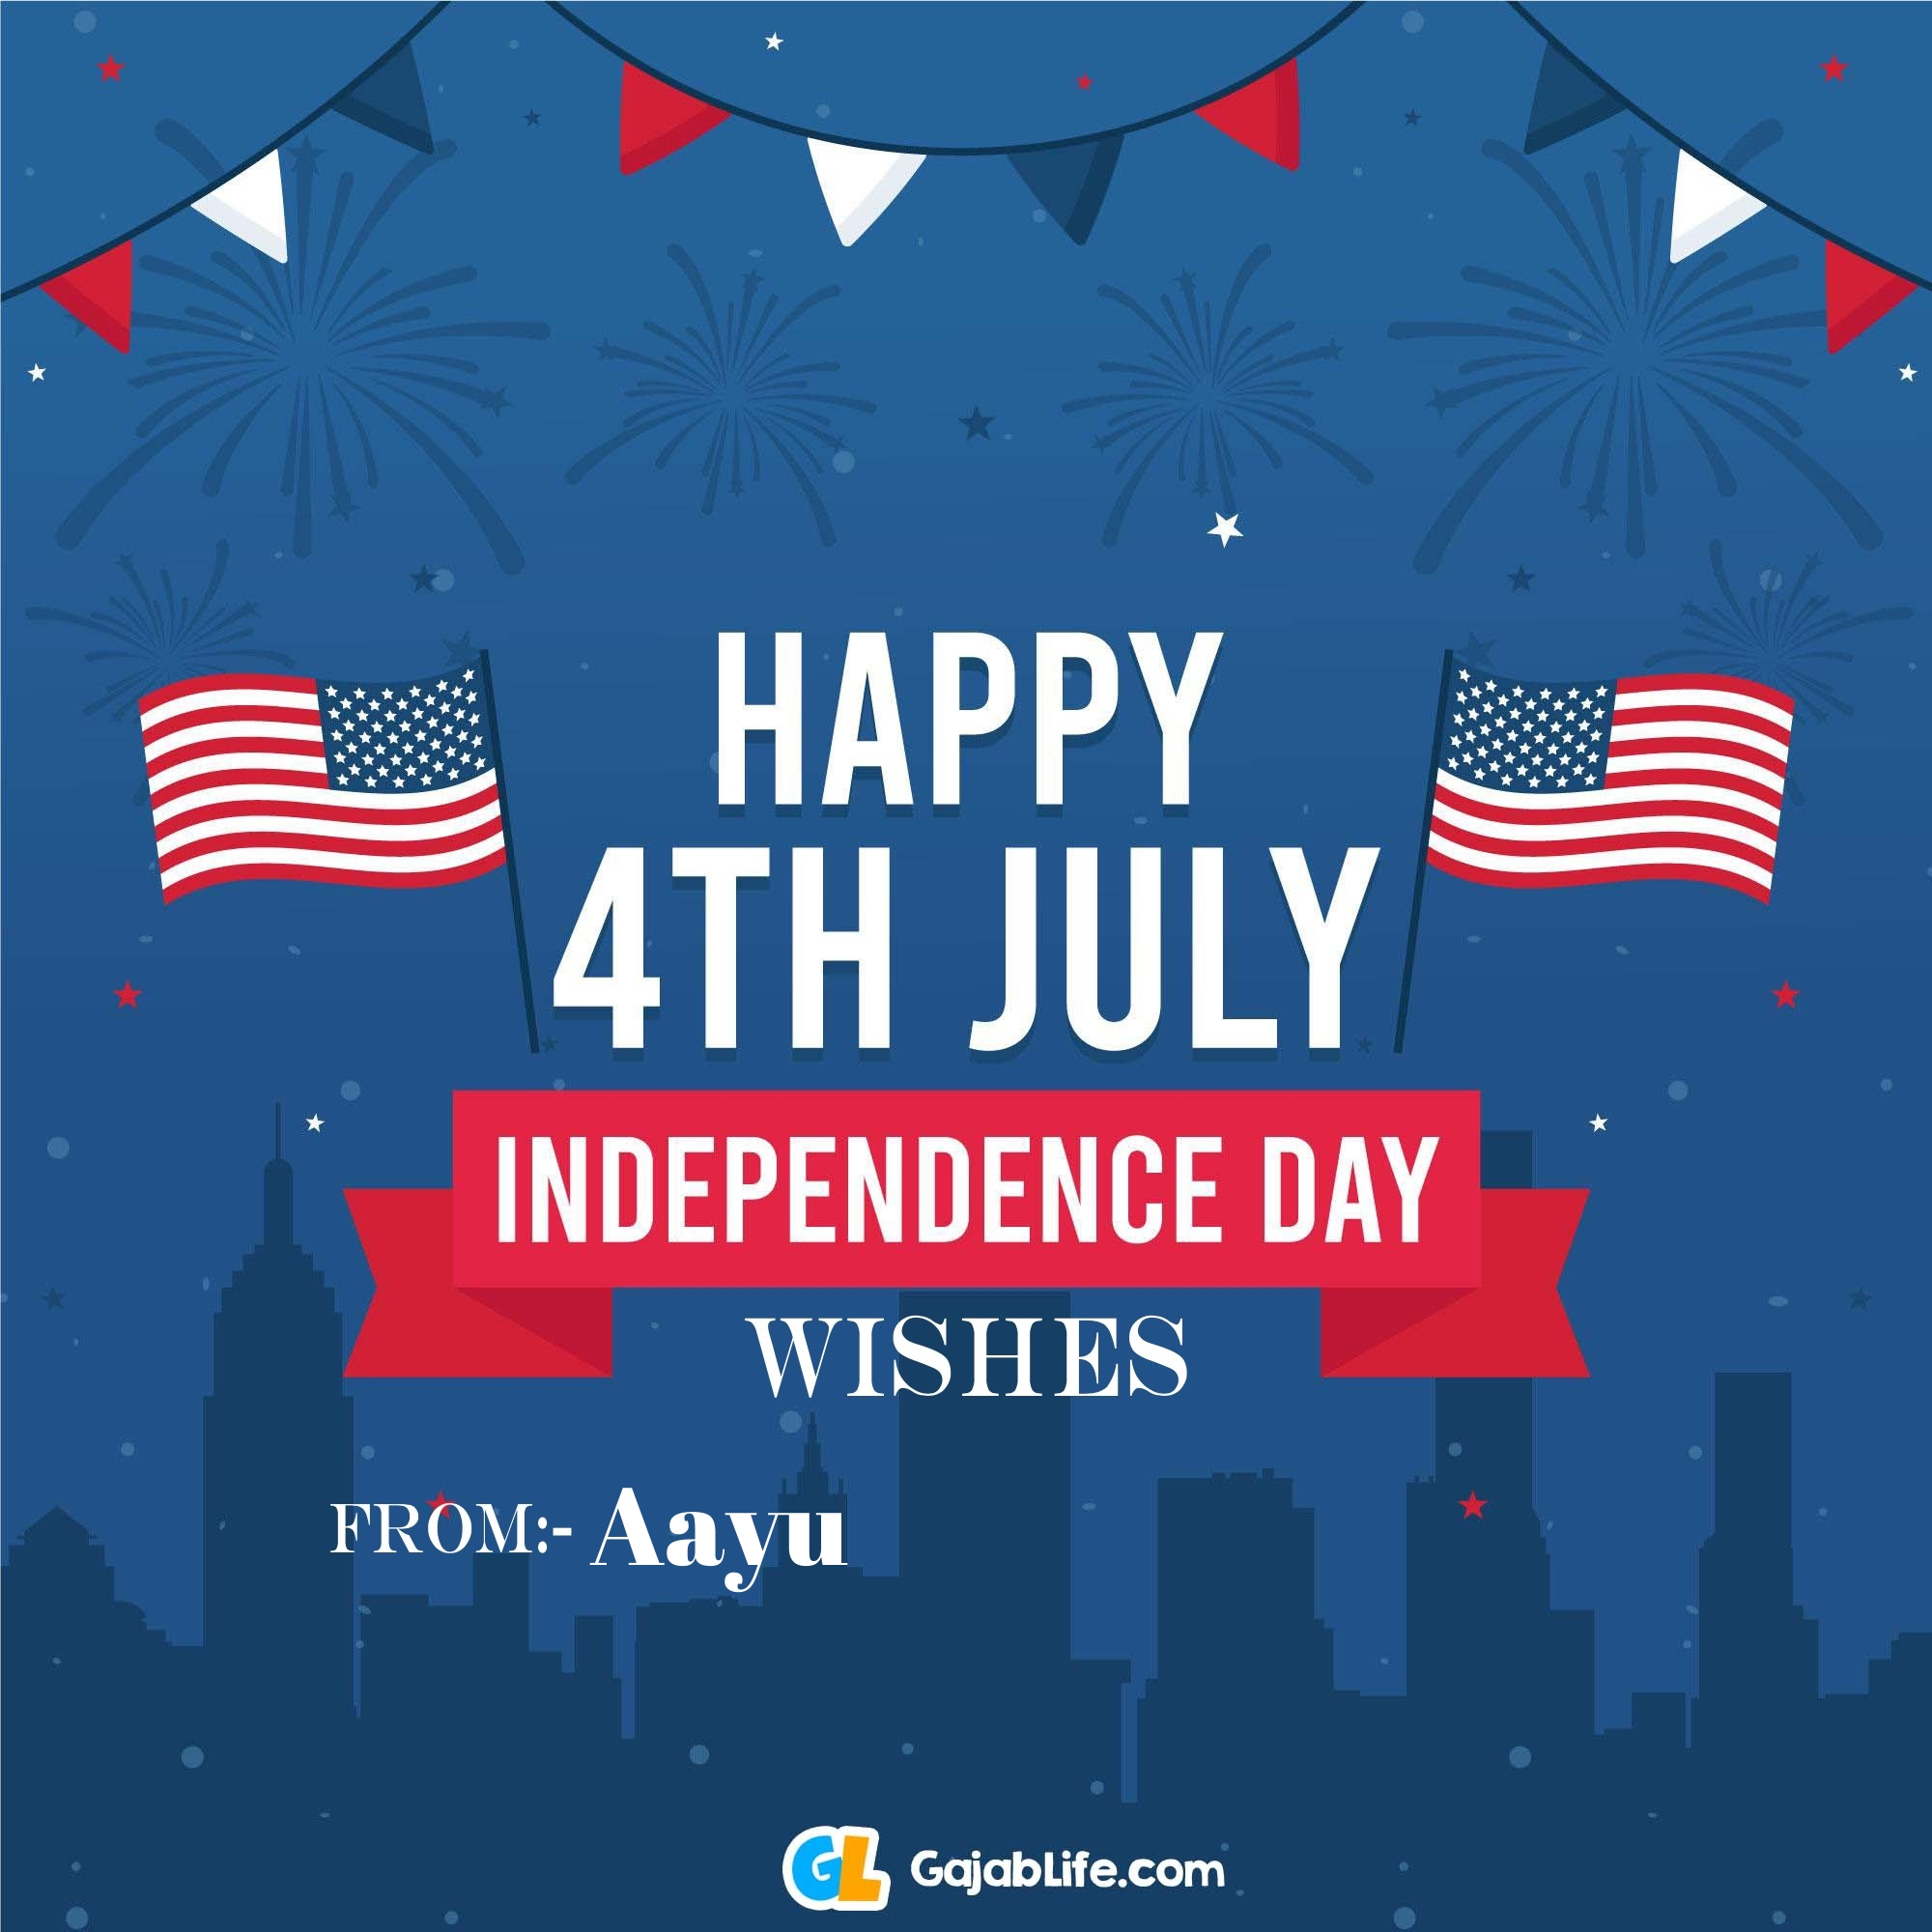 Aayu happy independence day united states of america images